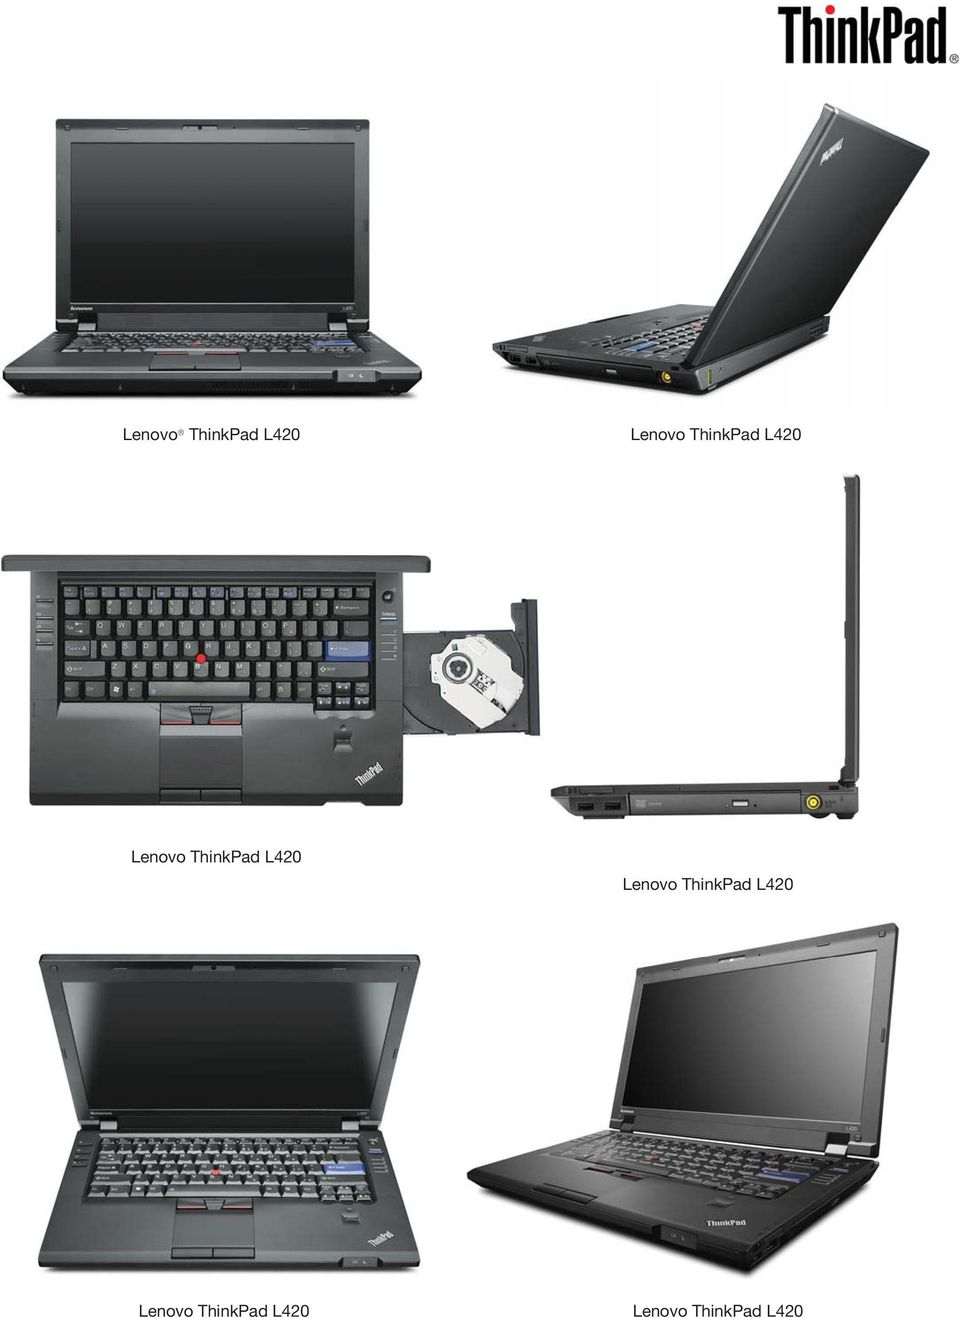 Download Drivers: Lenovo ThinkPad L420 ST Microelectronics